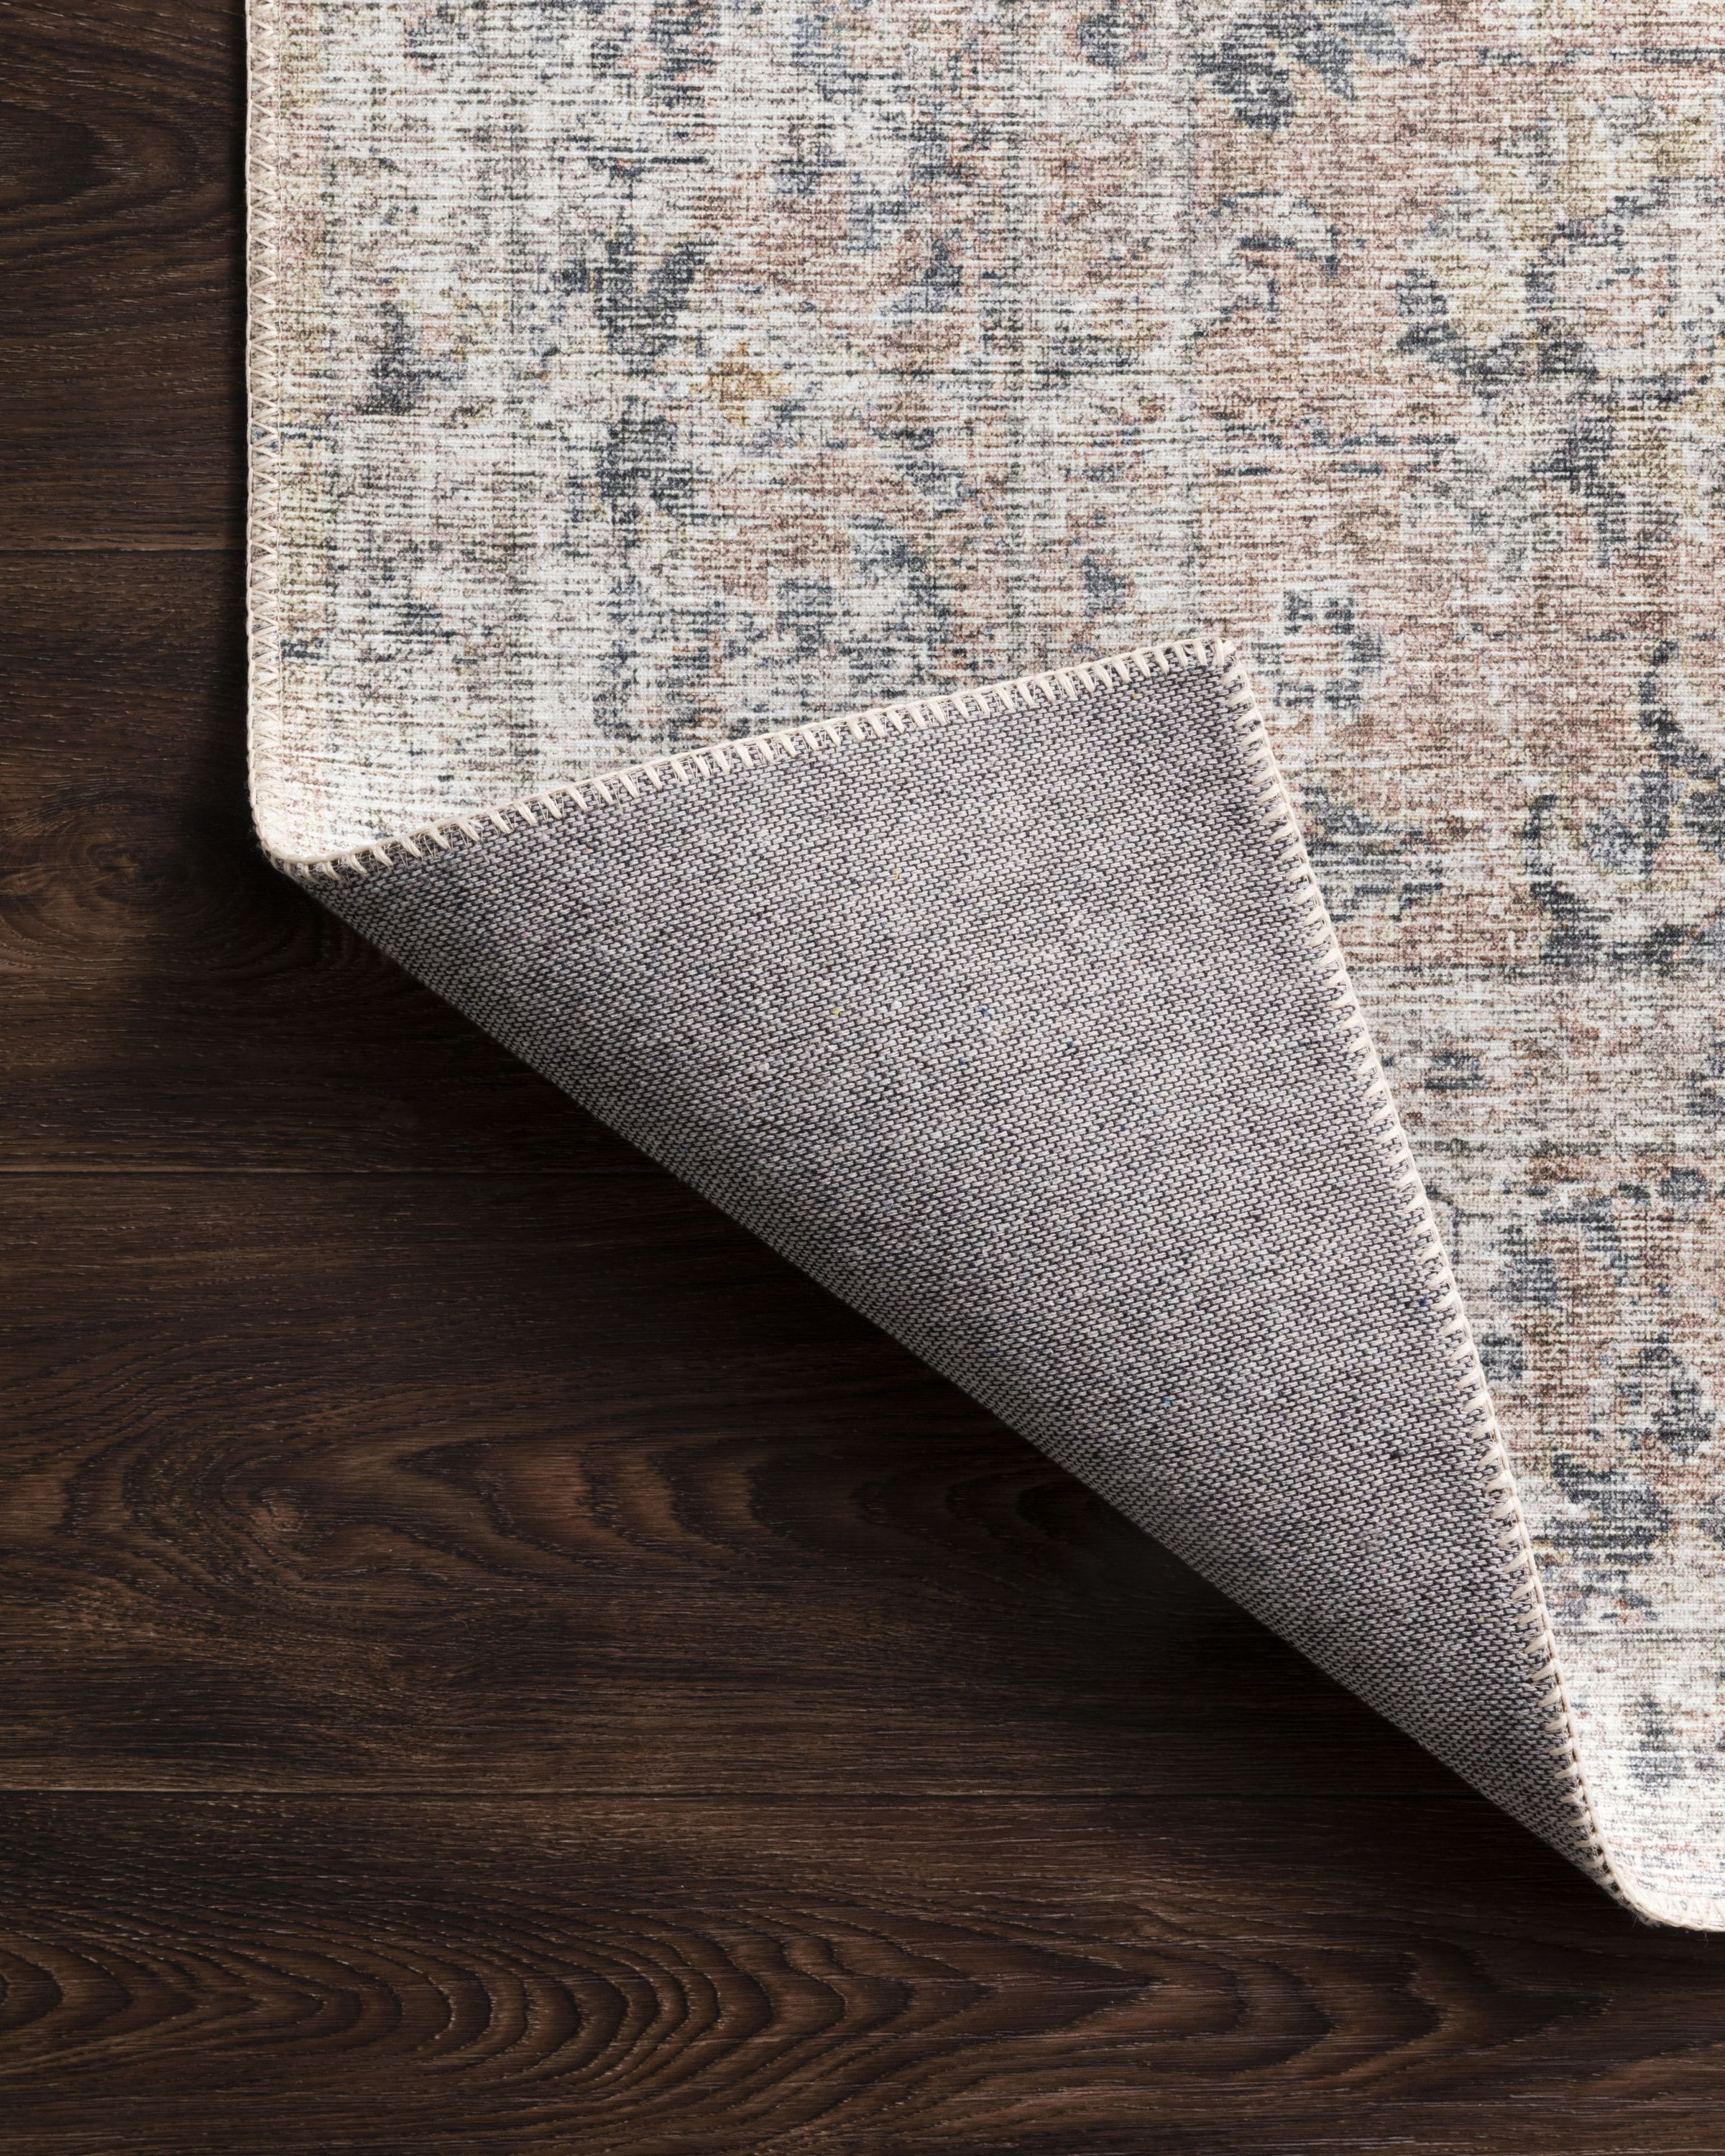 Skye Maybelle Rug Color Blush Gray Size 2 6 X 7 6 In 2020 Grey Area Rug Blush Rug Area Rugs